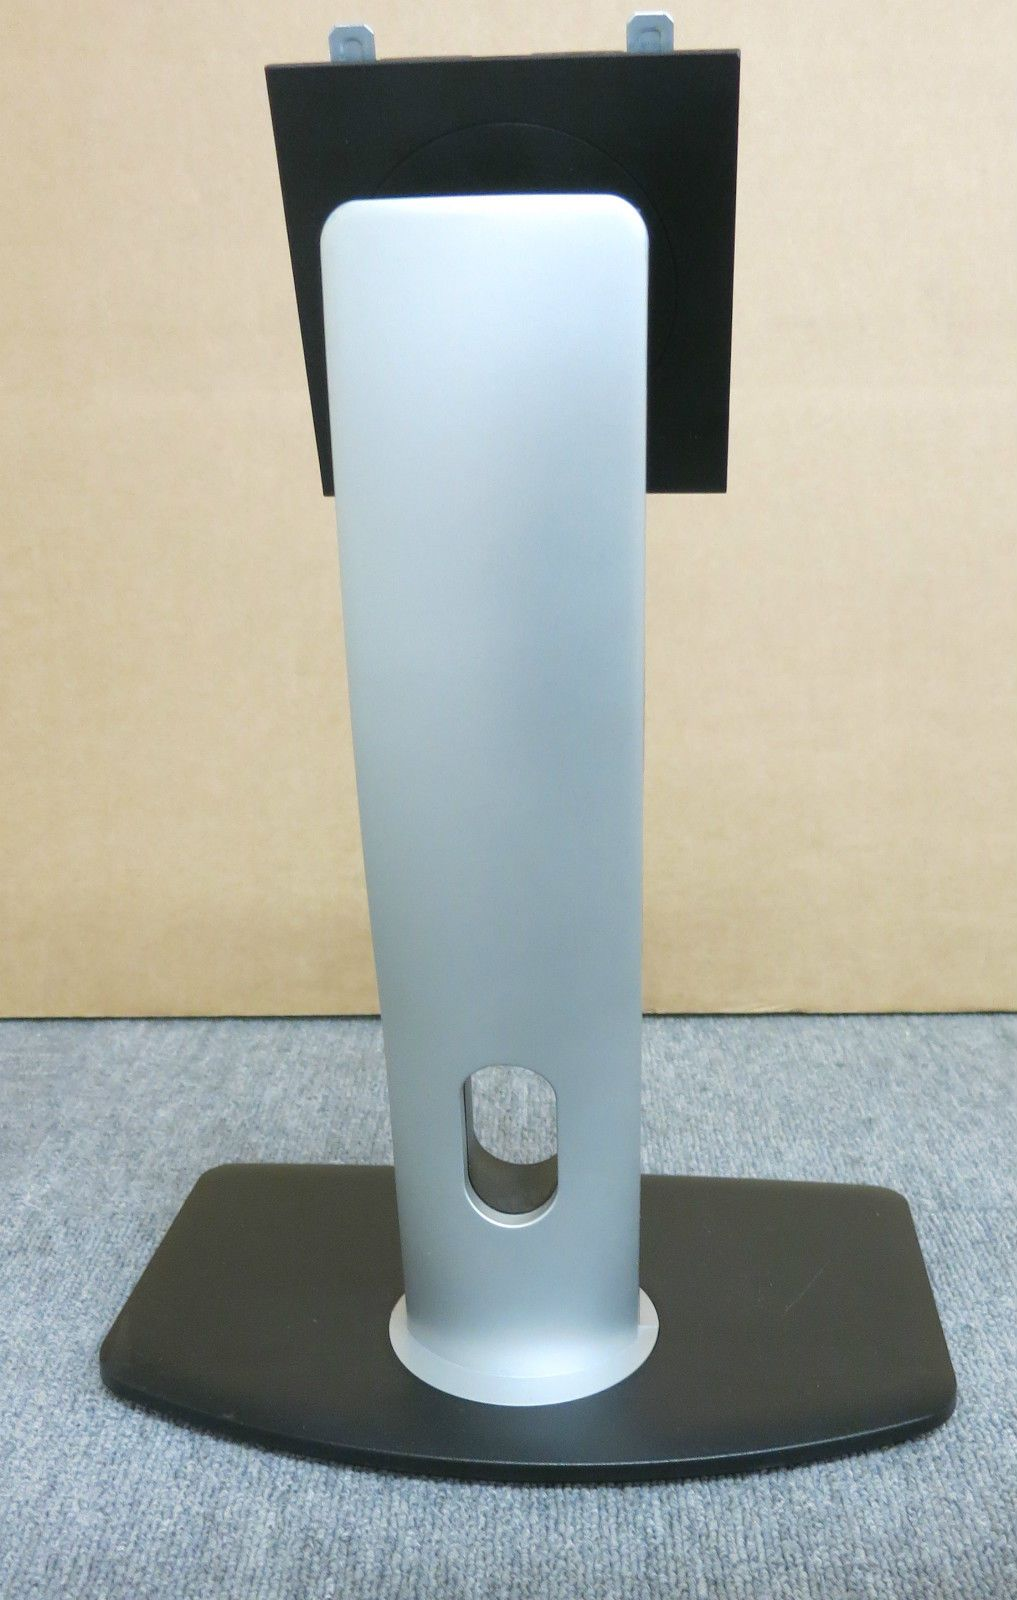 Dell 24 LCD LED Widescreen Monitor Base Stand P2412Hb